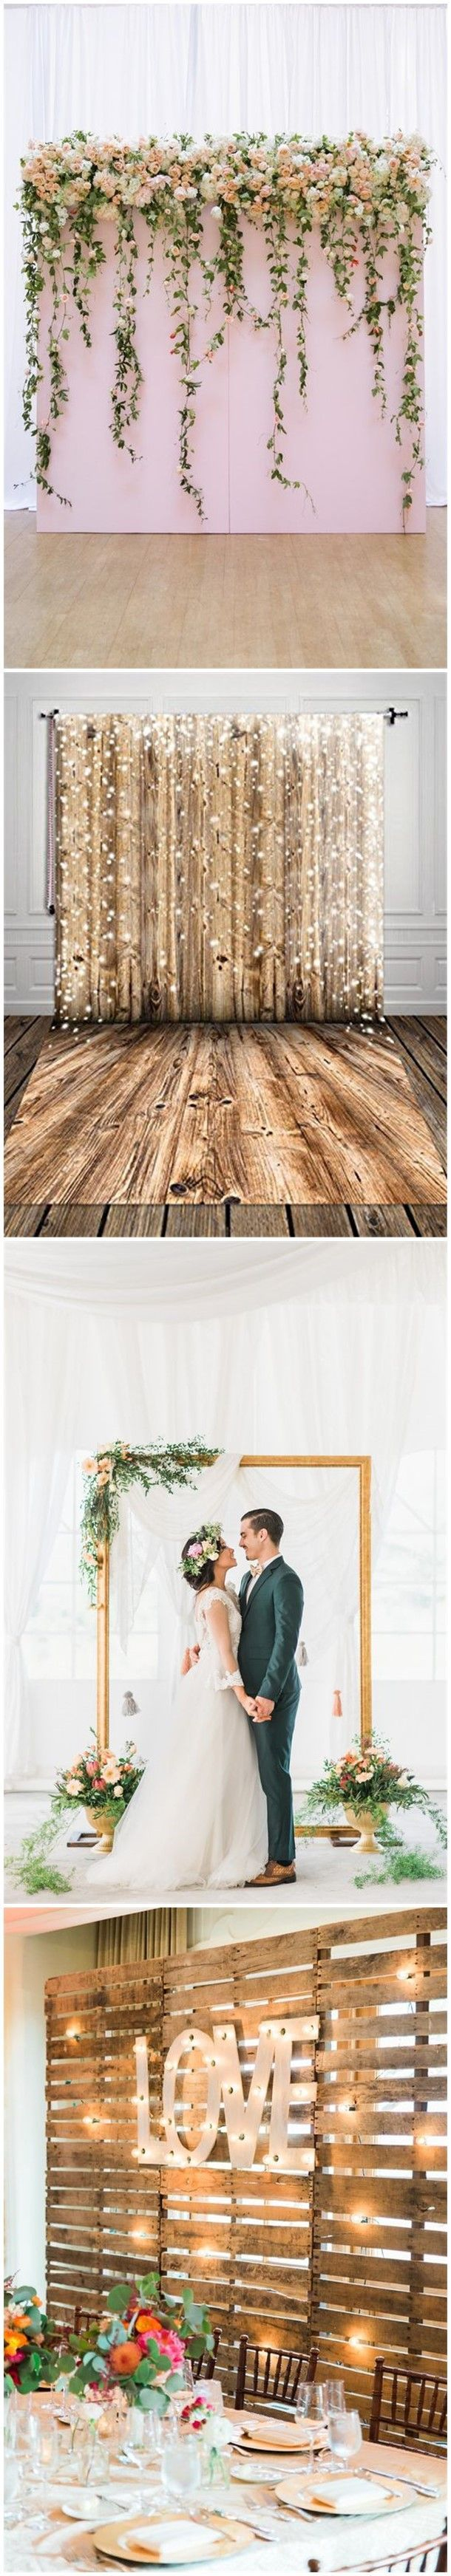 Rustic Weddings » 30 Unique and Breathtaking Wedding Backdrop Ideas »   ❤️ More:  http://www.weddinginclude.com/2017/05/unique-and-breathtaking-wedding-backdrop-ideas/?utm_content=buffera5715&utm_medium=social&utm_source=pinterest.com&utm_campaign=buffer: